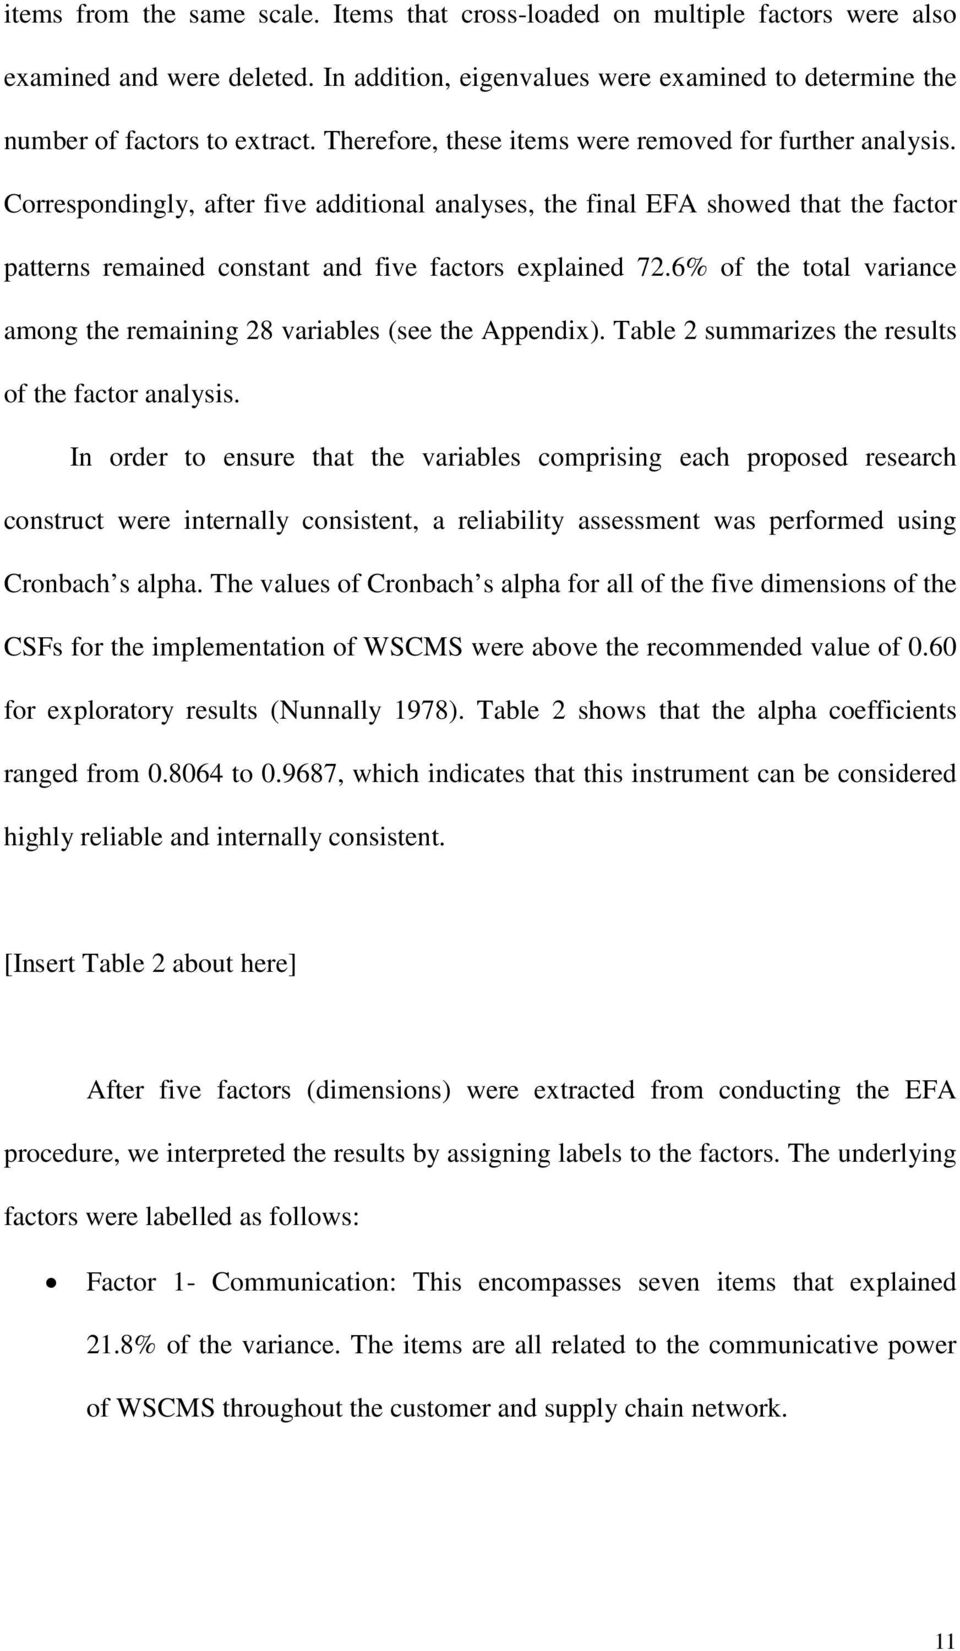 Correspondingly, after five additional analyses, the final EFA showed that the factor patterns remained constant and five factors explained 72.